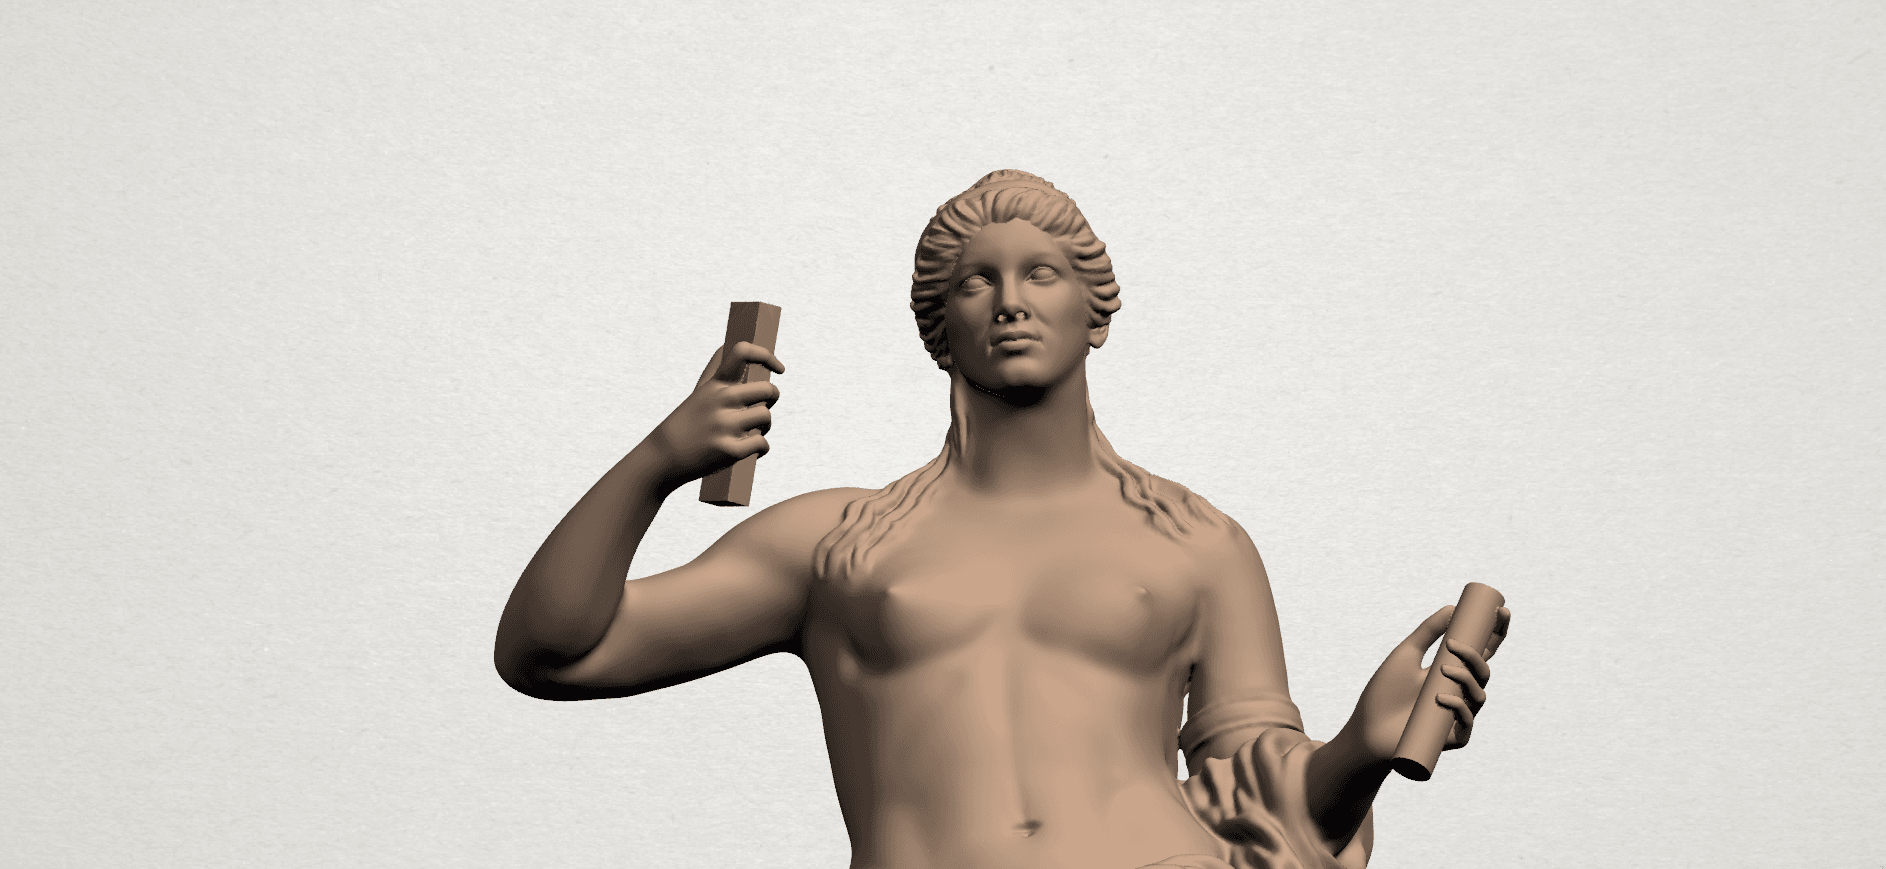 Naked Girl (xi) A09.png Download free STL file Naked Girl 11 • 3D printable model, GeorgesNikkei